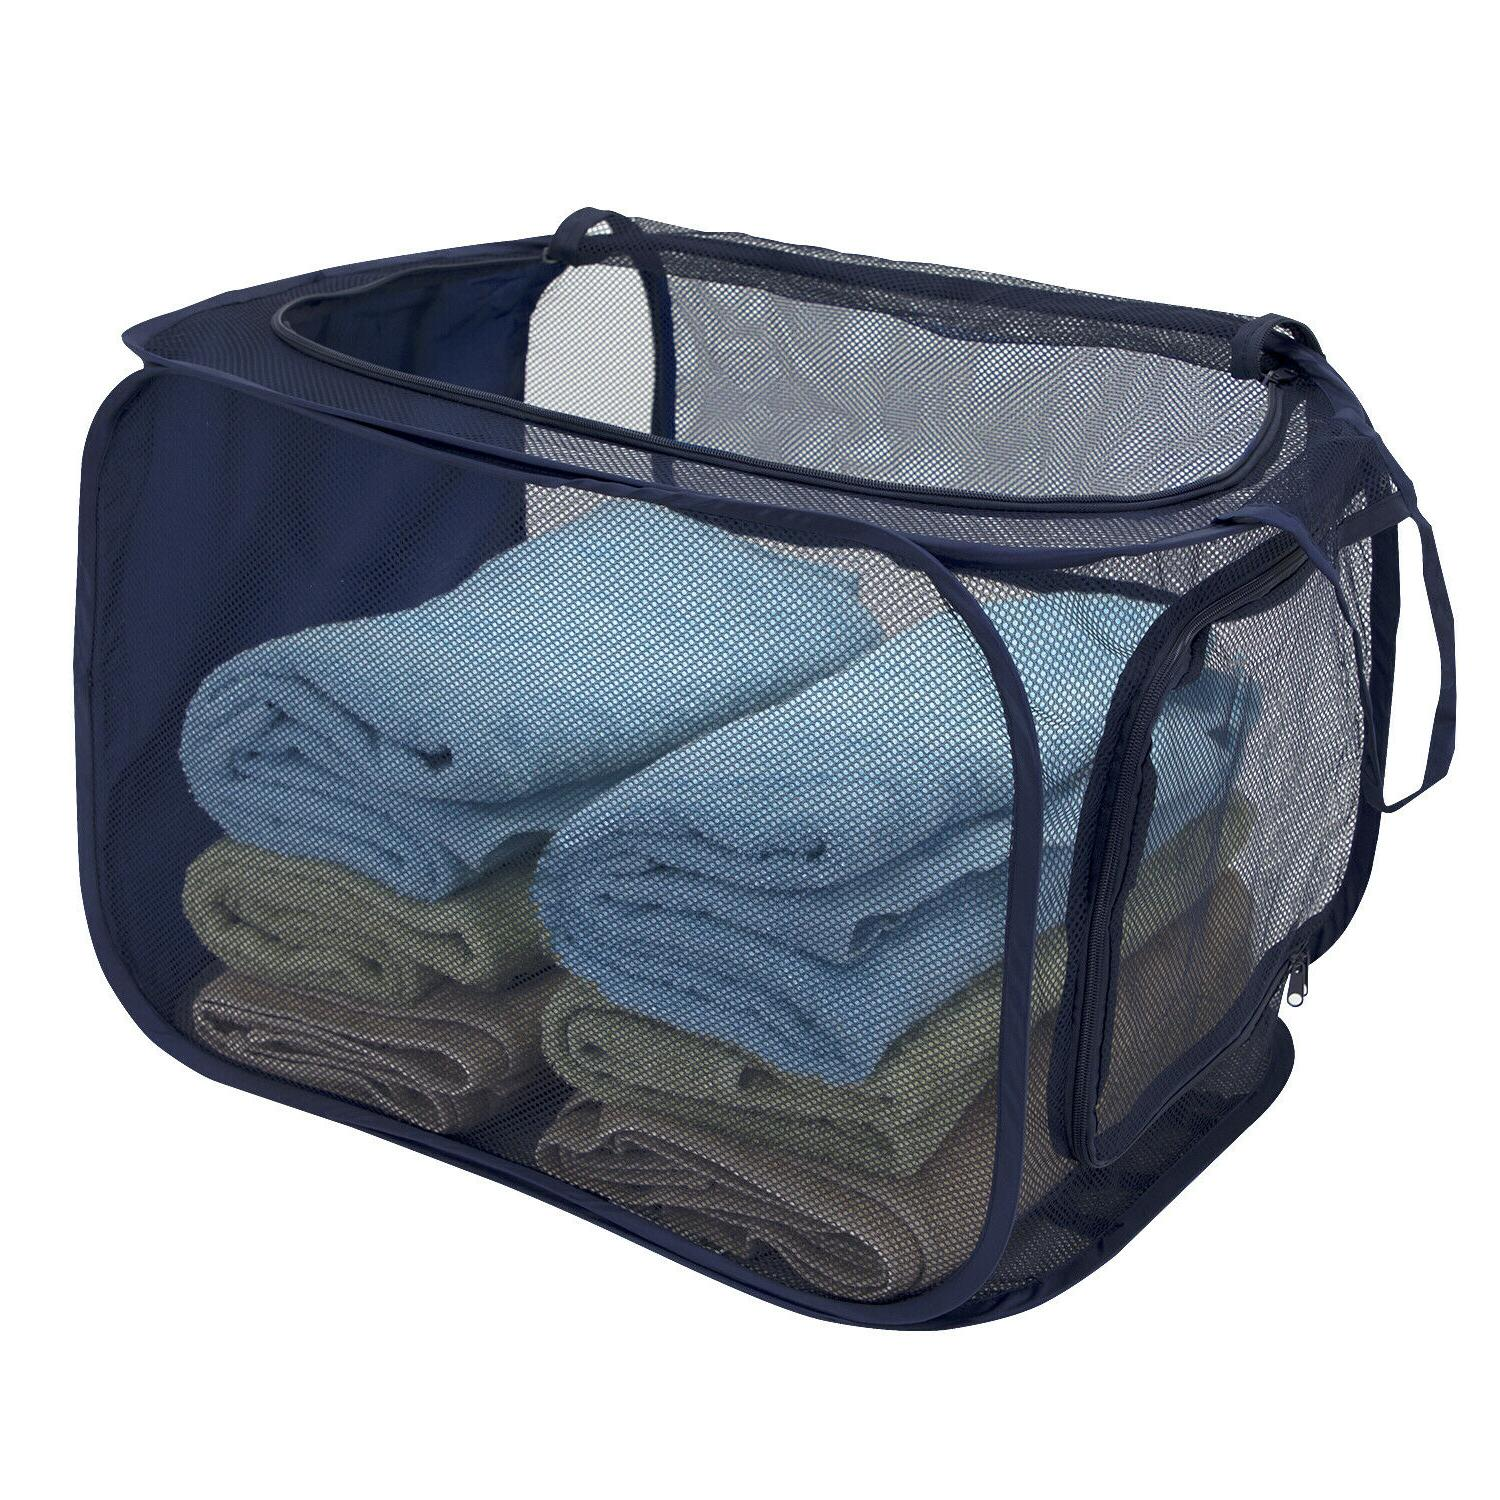 Collapsible 2-Way Mesh Laundry Clothes Hamper One Basket*USA